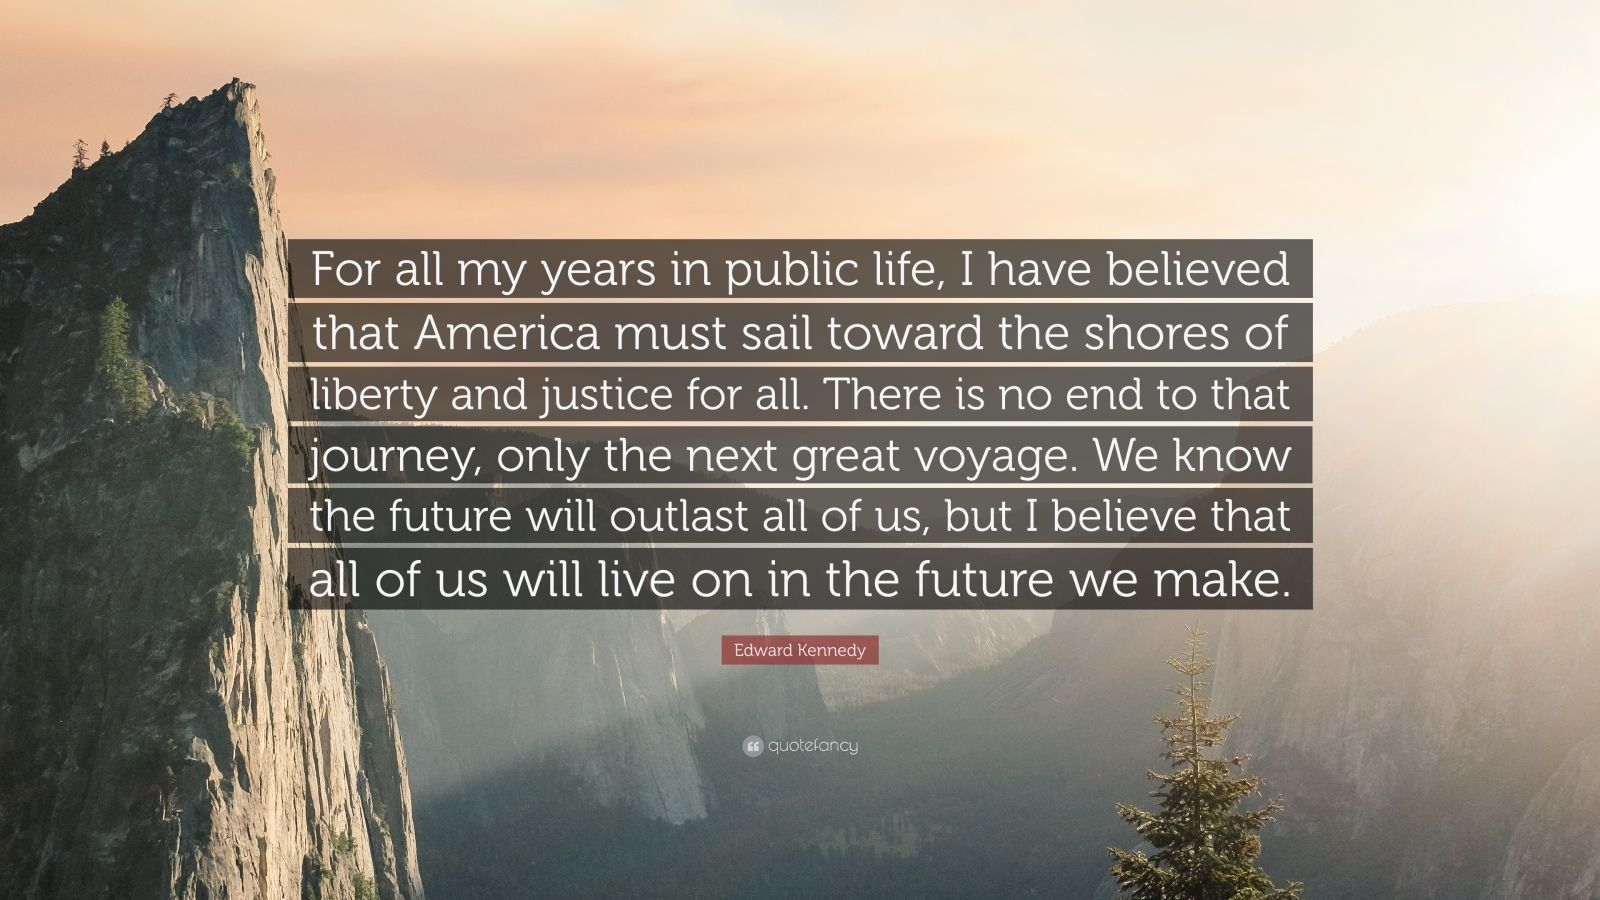 """Edward Kennedy Quote: """"For all my years in public life, I have believed that America must sail toward the shores of liberty and justice for all. There is no end to that journey, only the next great voyage. We know the future will outlast all of us, but I believe that all of us will live on in the future we make."""""""